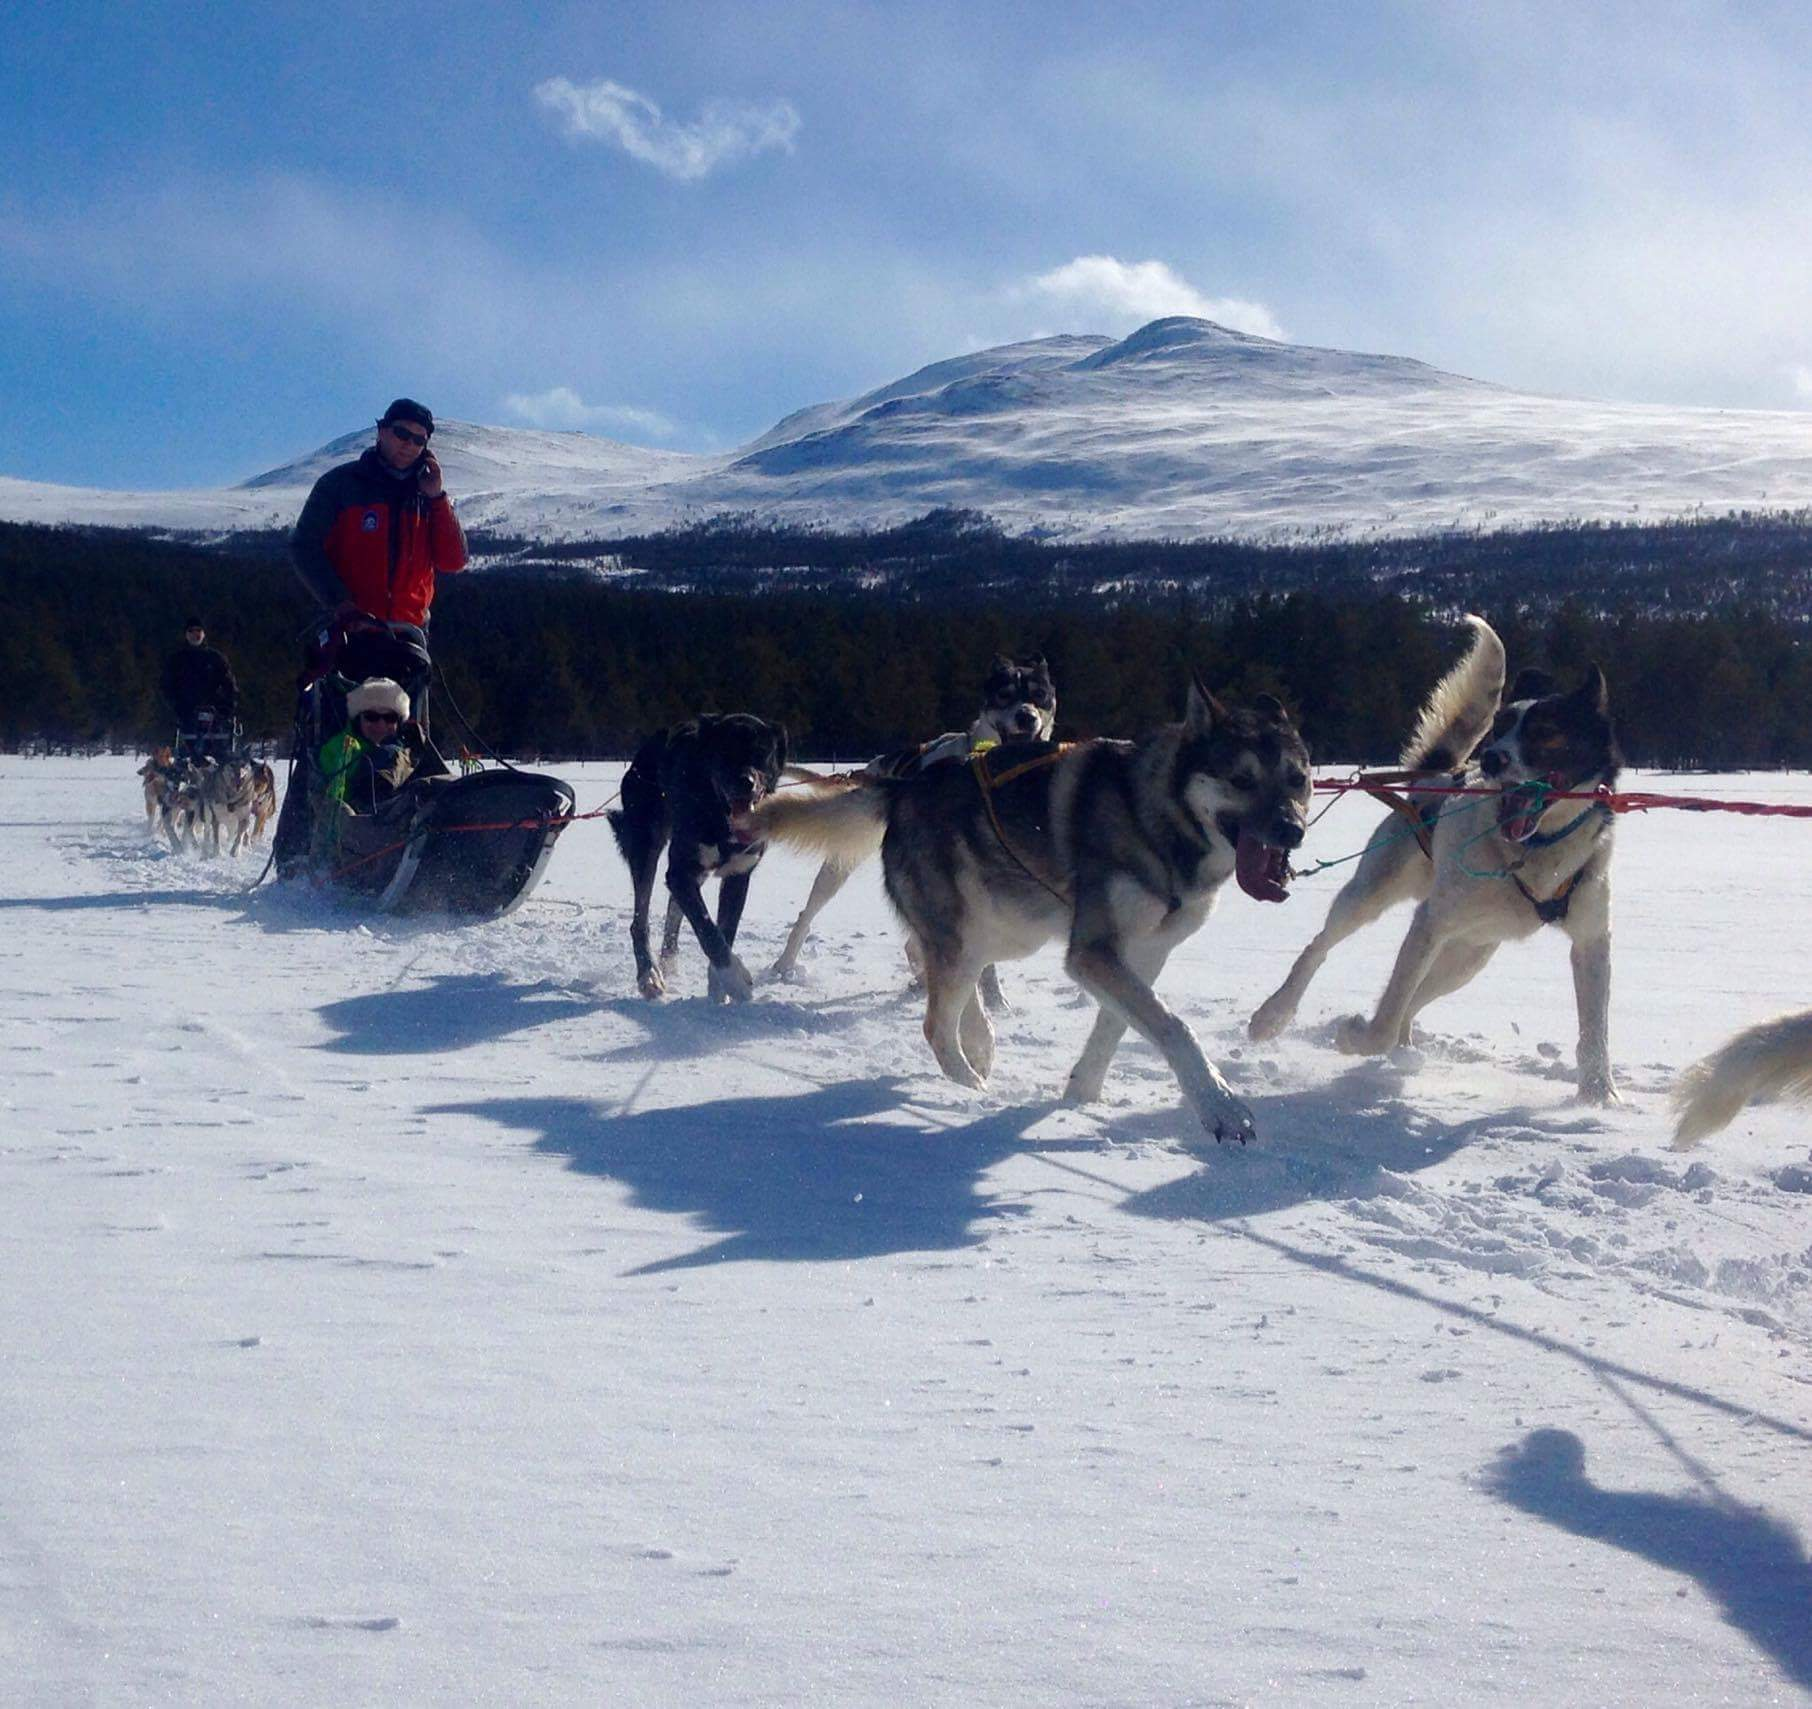 Dogsledding in Sjodalen